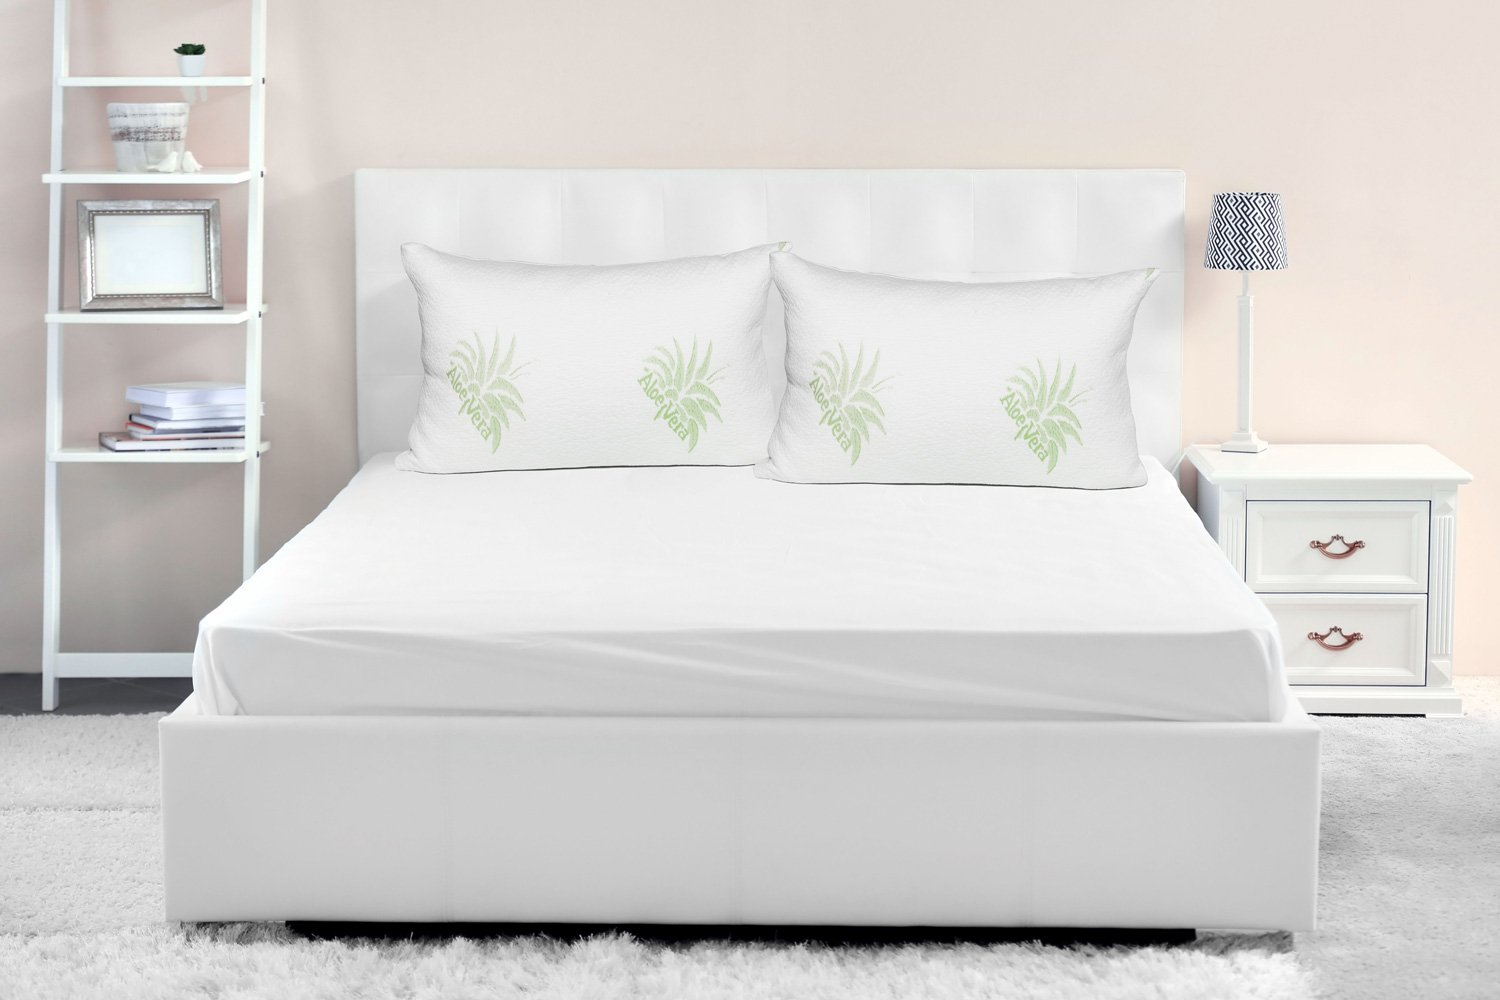 Dormire 2 Pack of Hypoallergenic Shredded Memory Foam Pillow with Removable Bamboo Soft Pillow Case Queen Size /並/行/輸/入/品